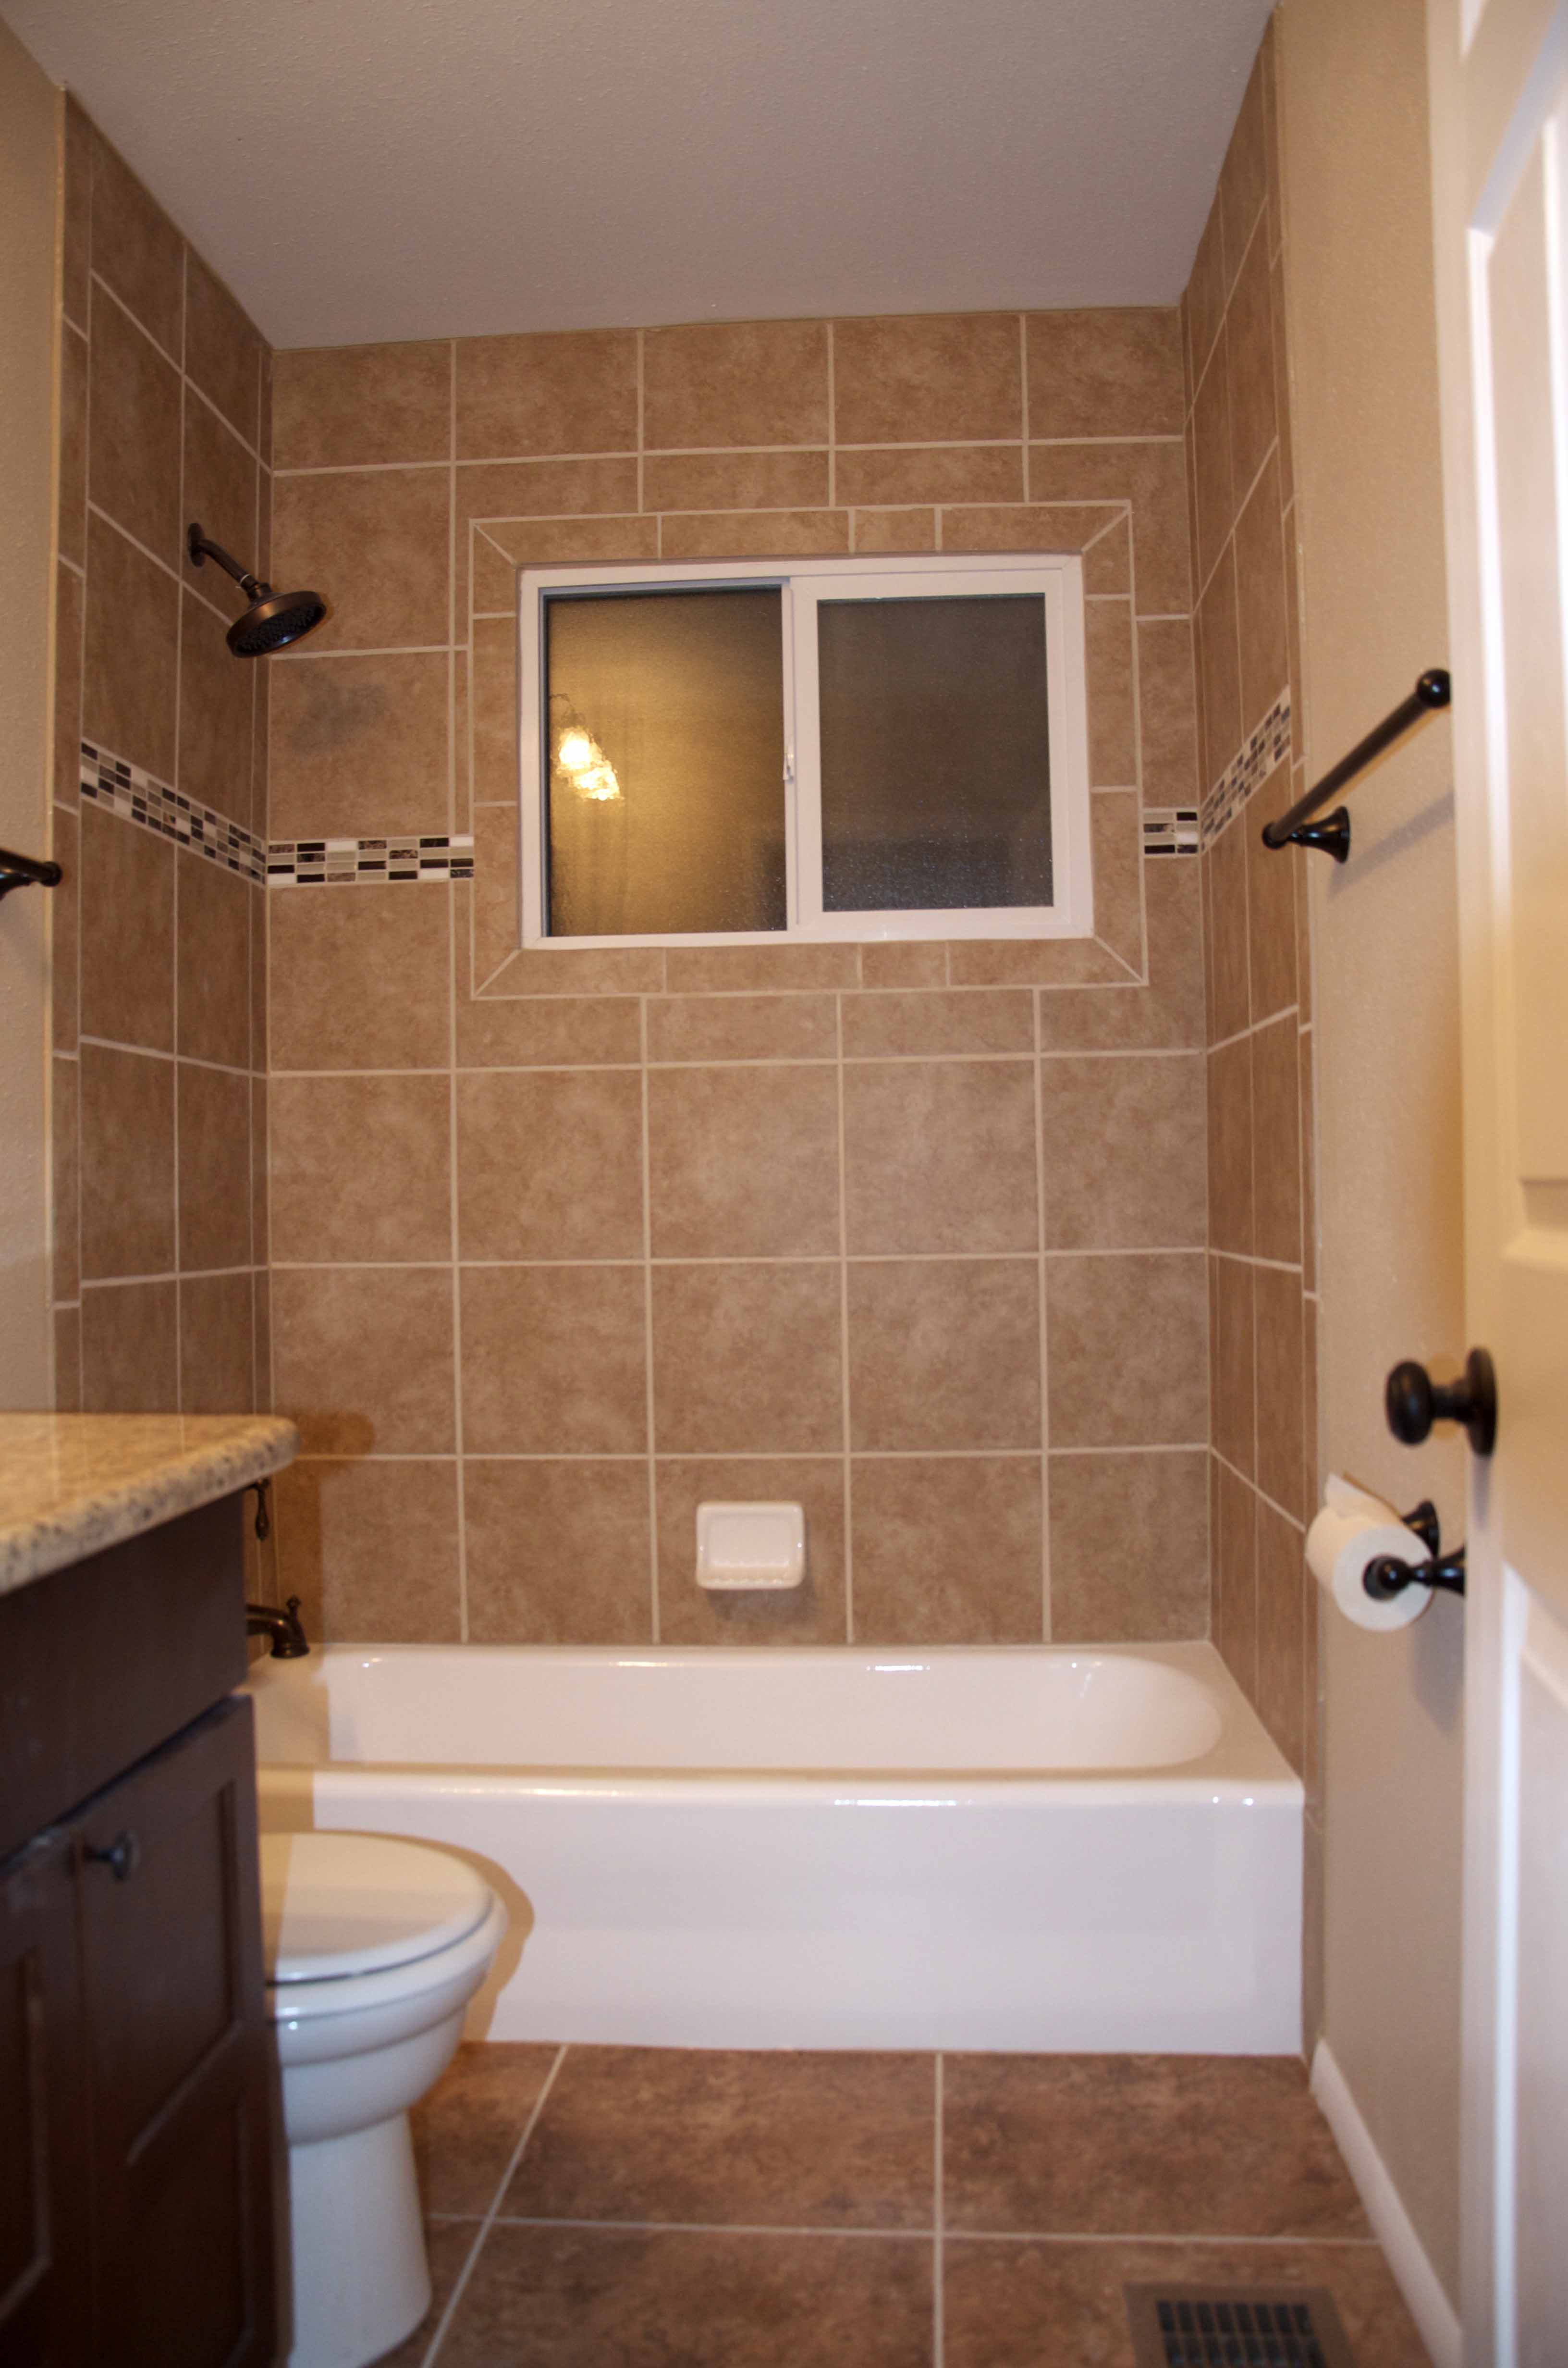 Newly Remodeled Home Located At 2564 E San Miguel 80909